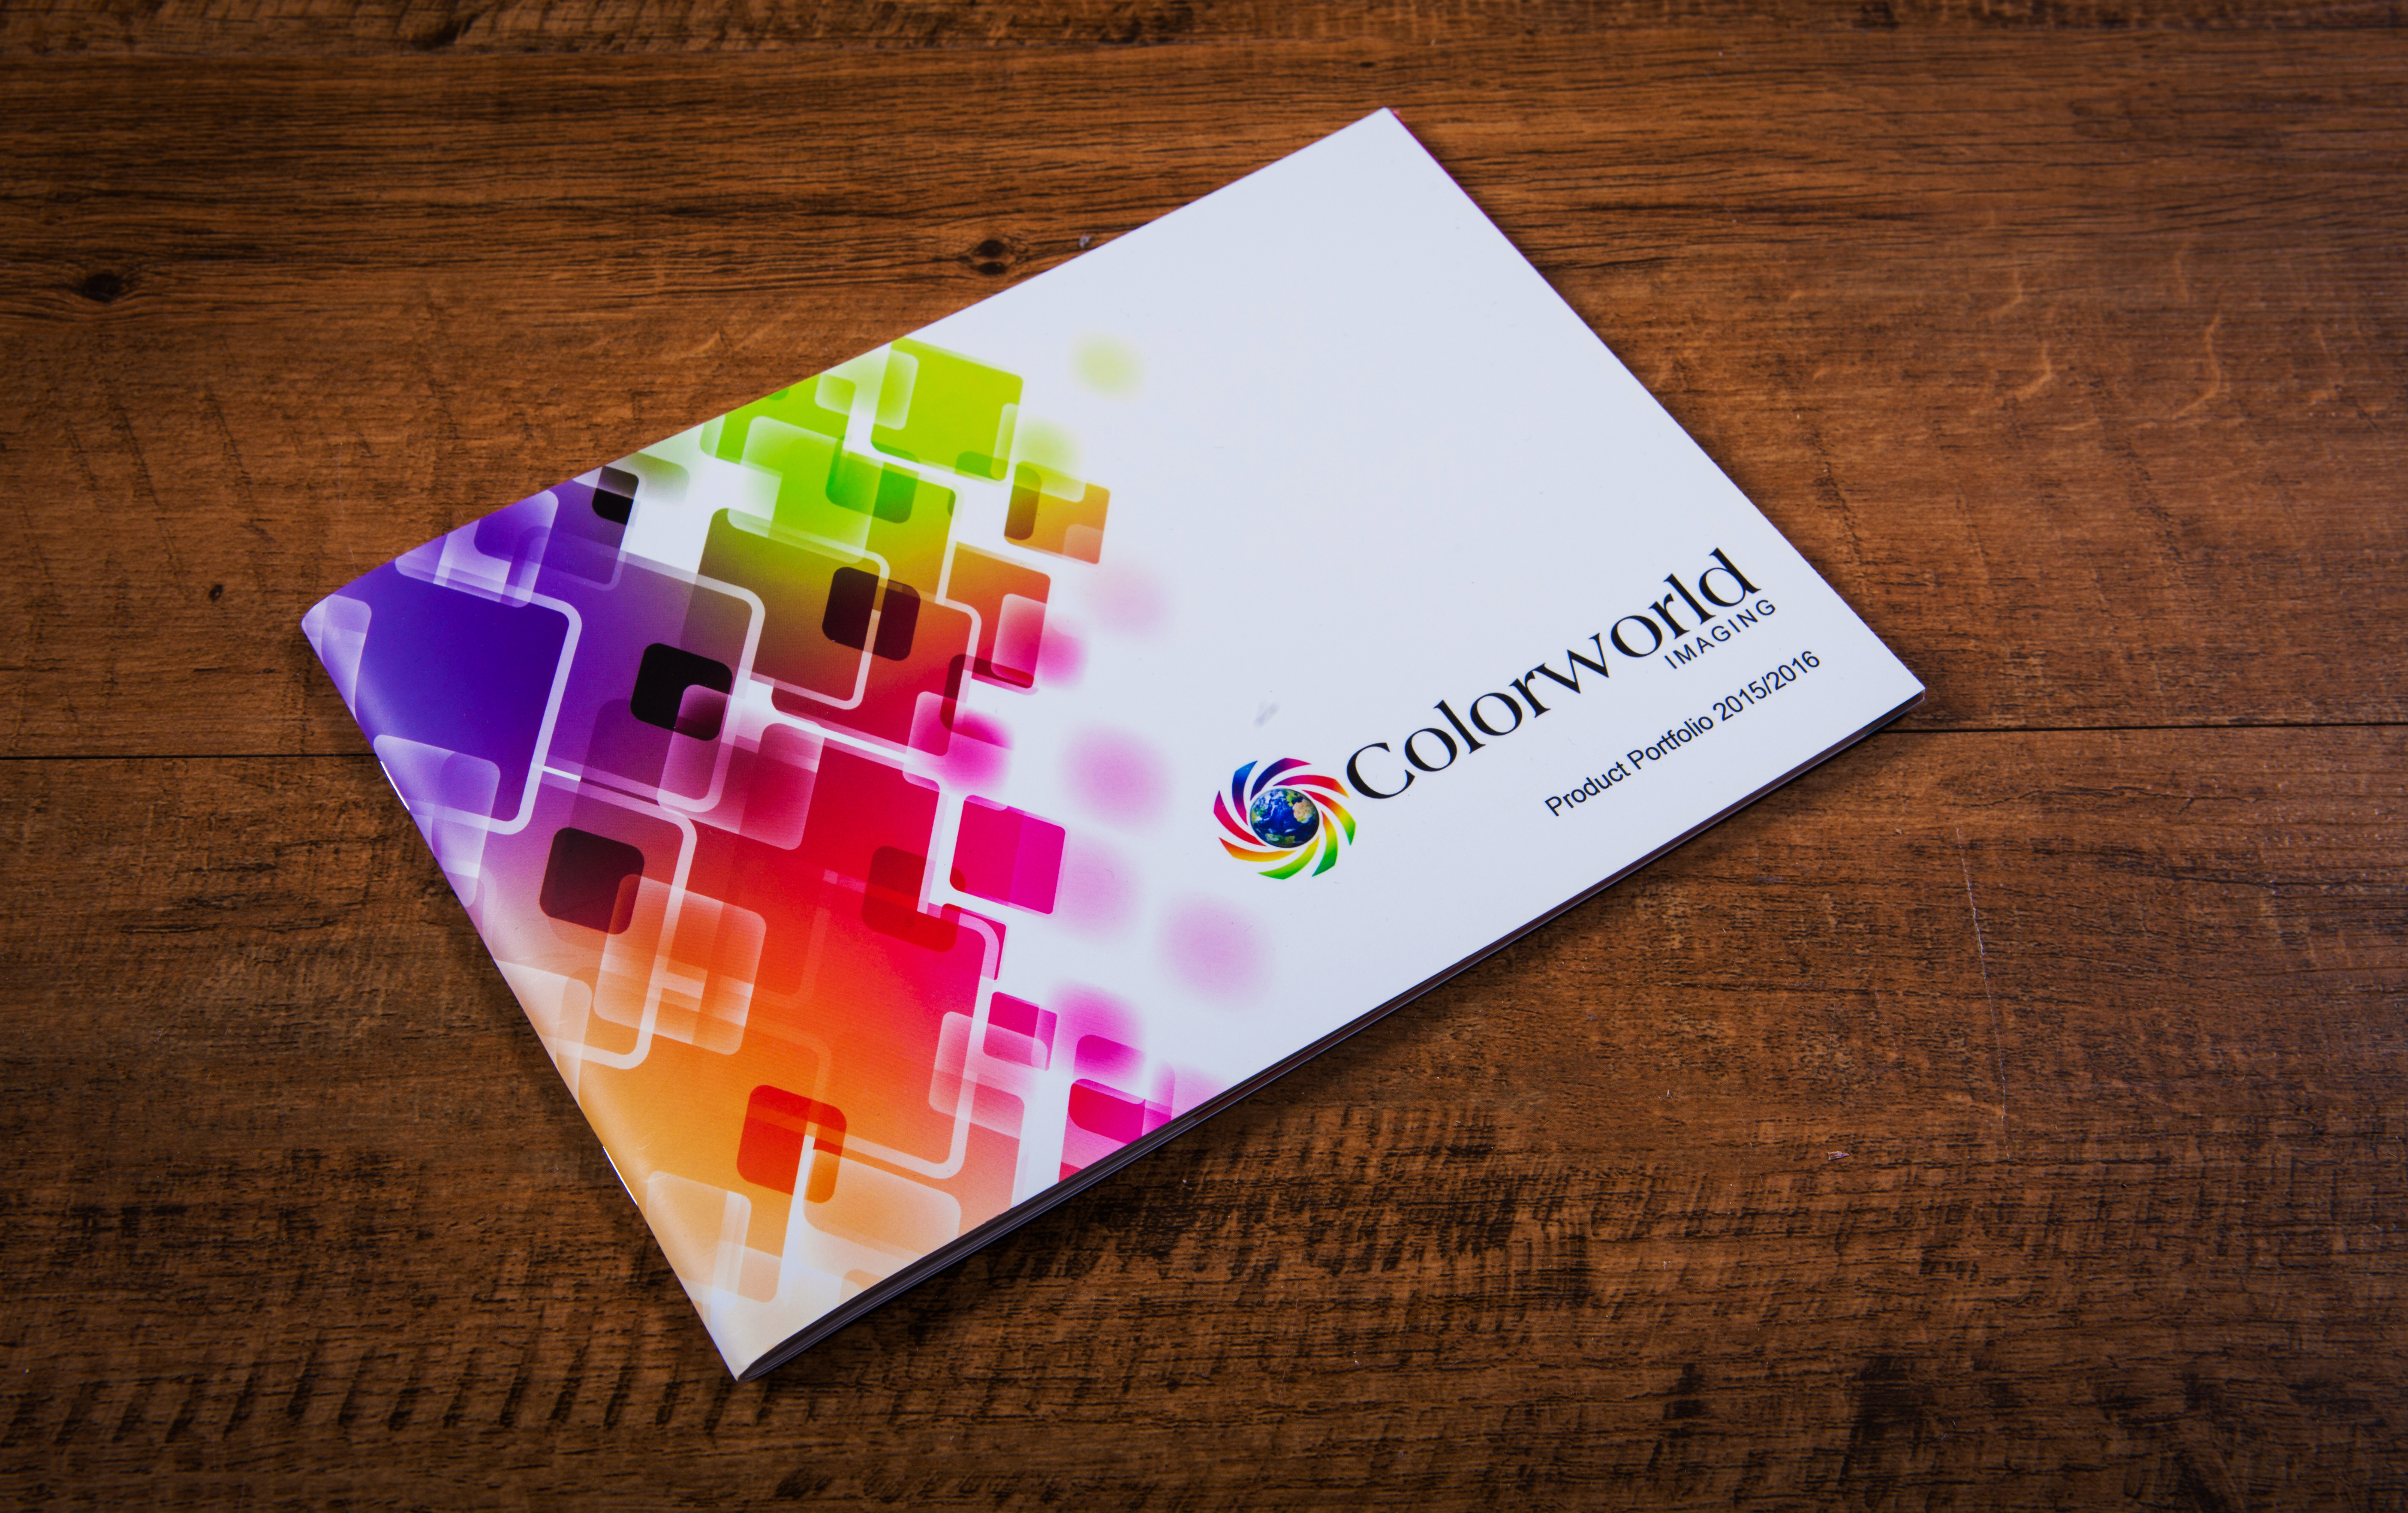 print, design and marketing services